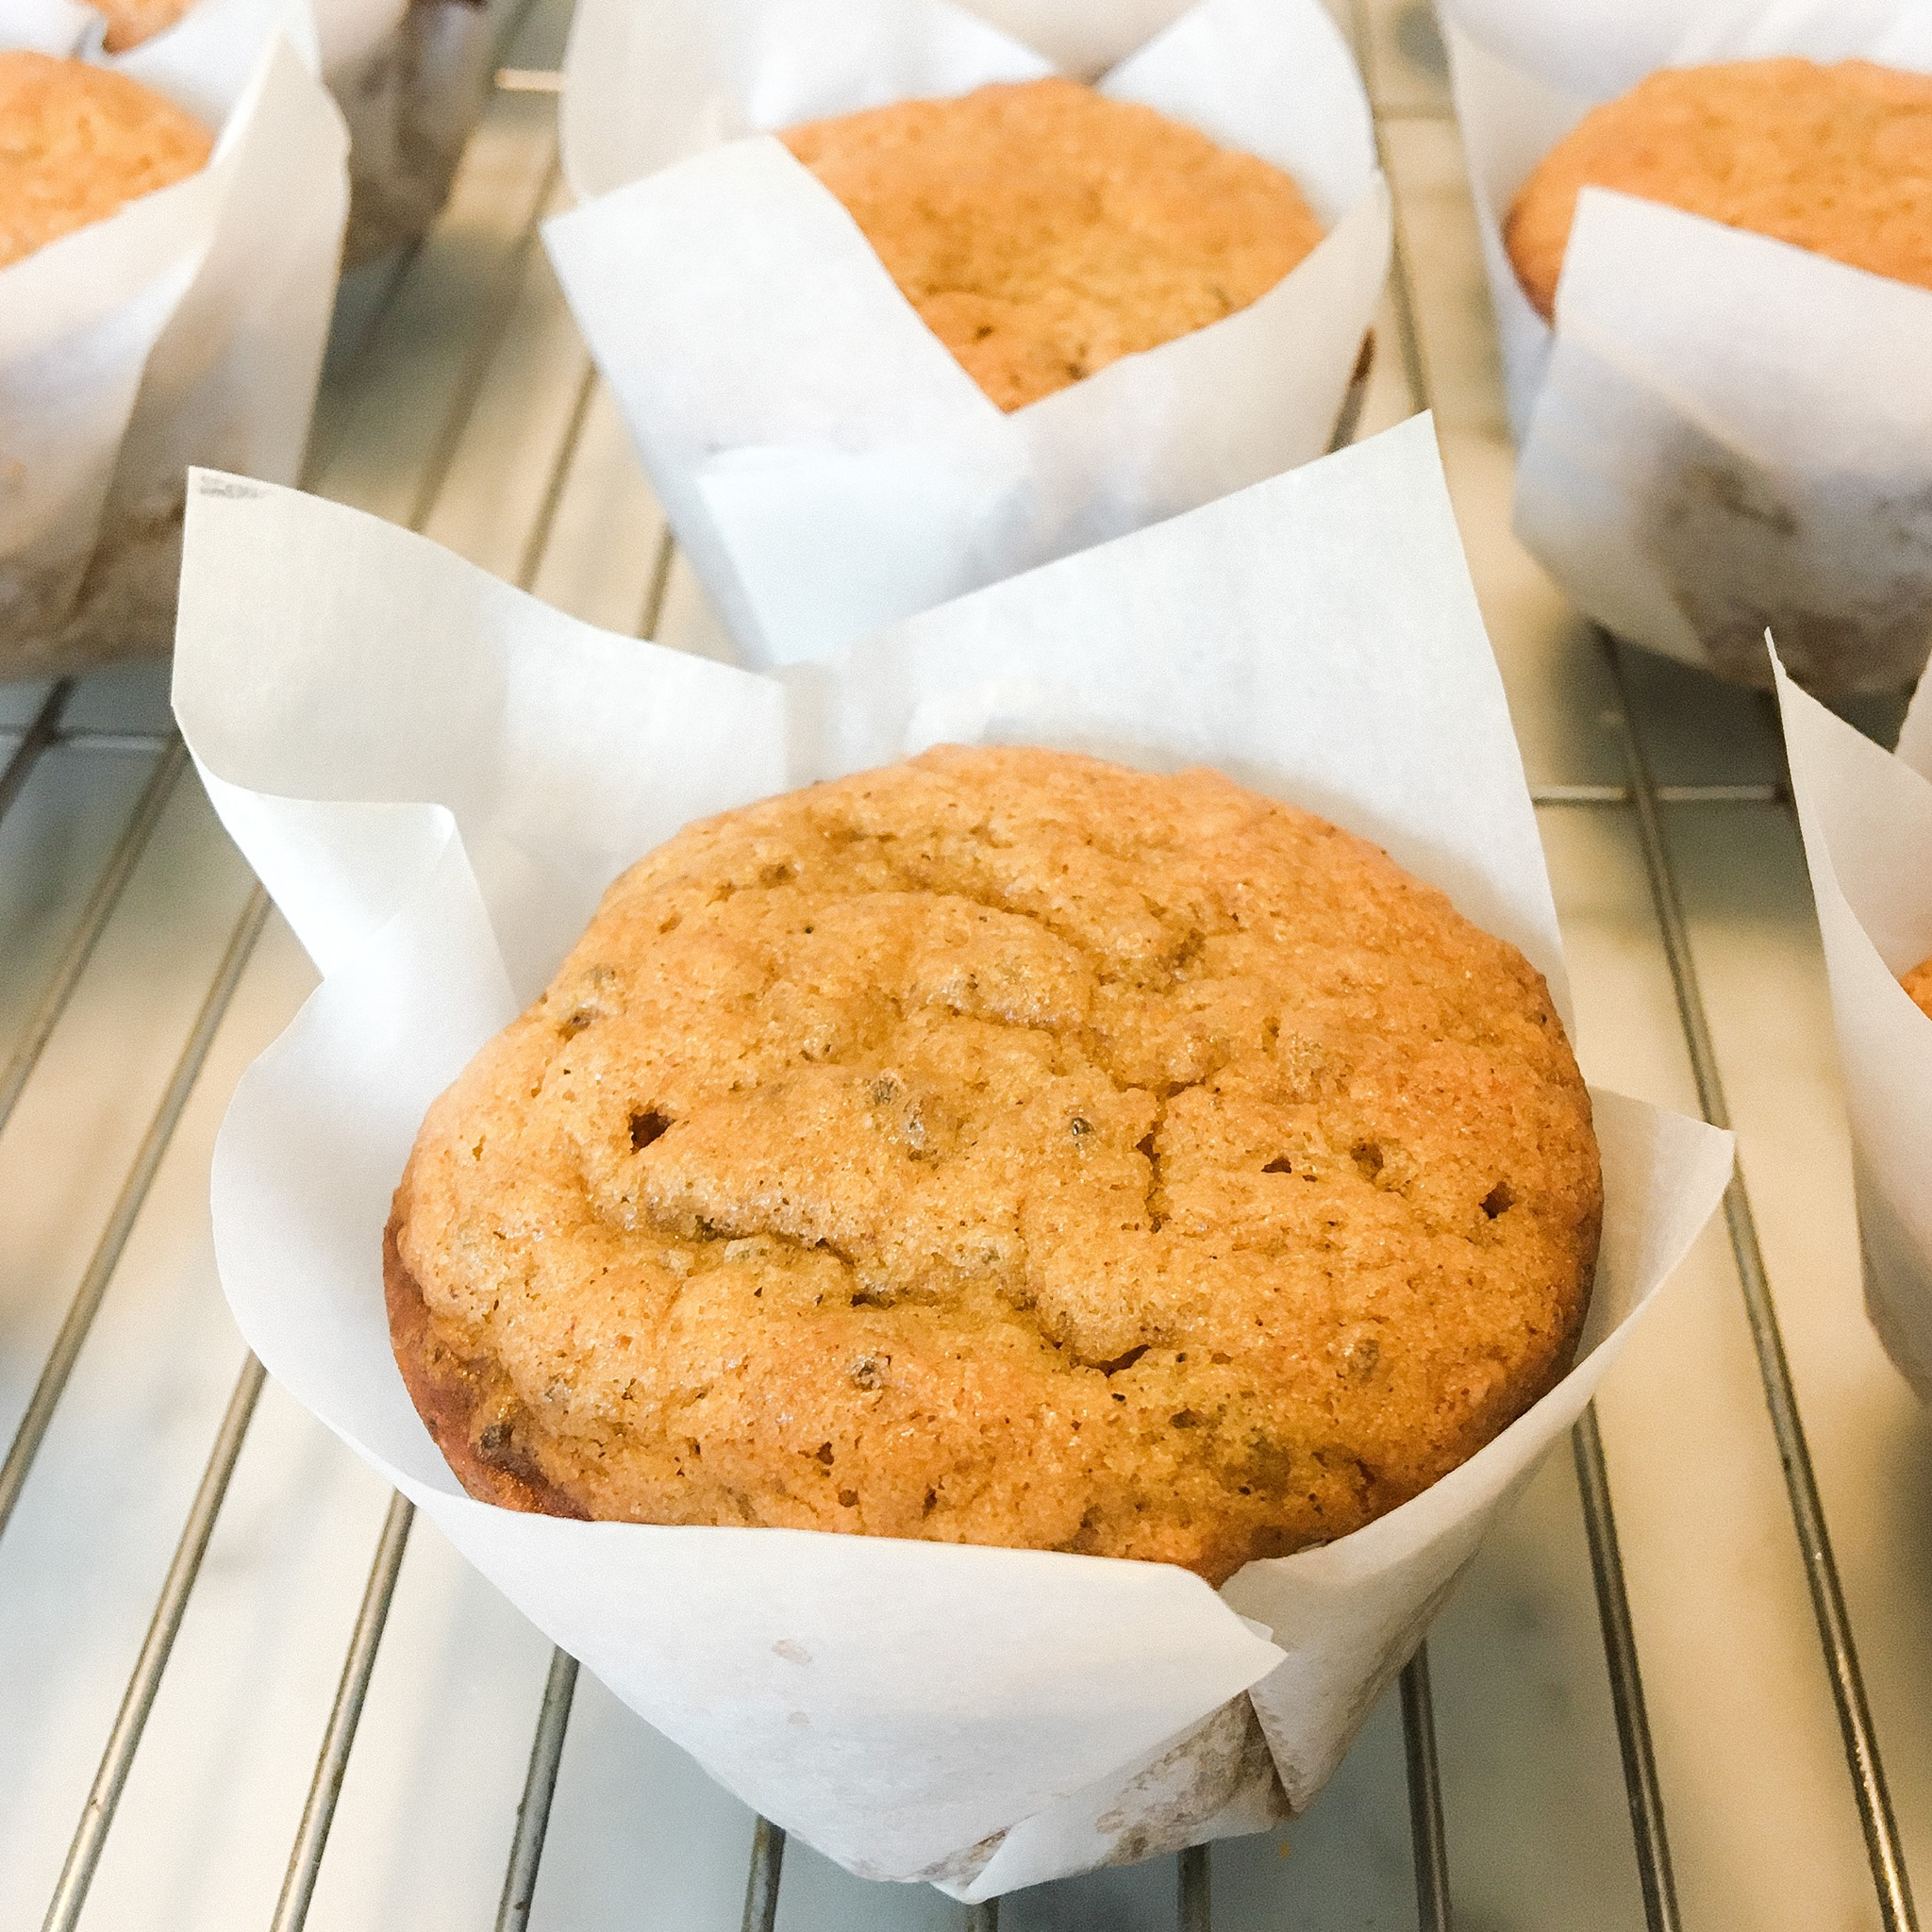 Making Parchment Paper Liners for my favorite Vegan Pumpkin Muffins (recipe too!)